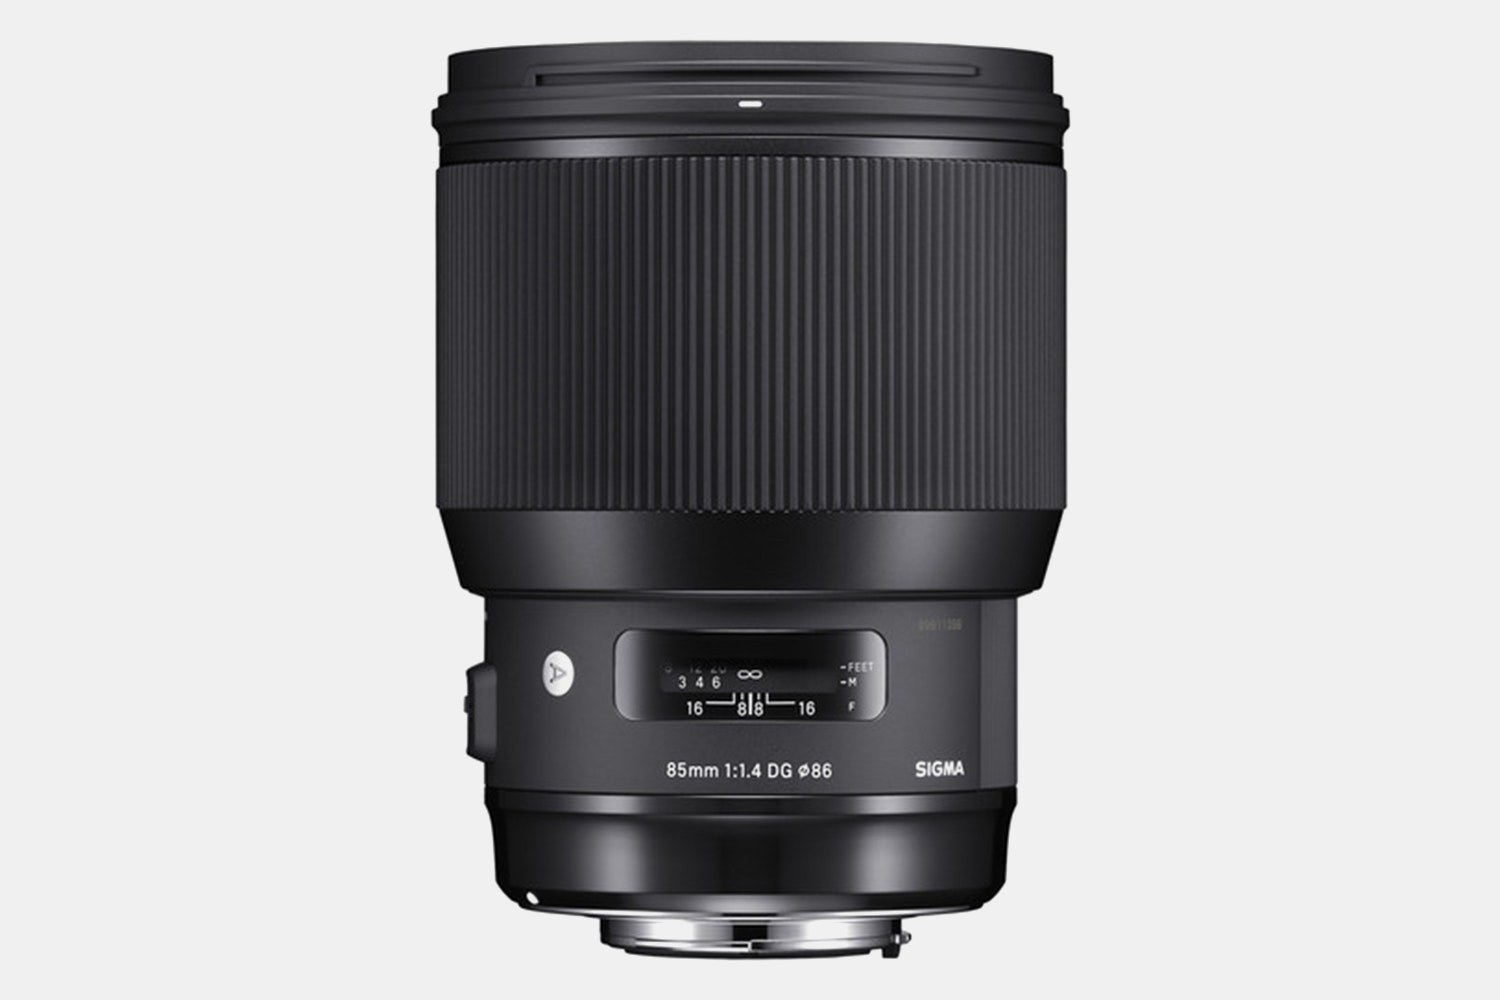 85mm lens for Canon (+ $339)